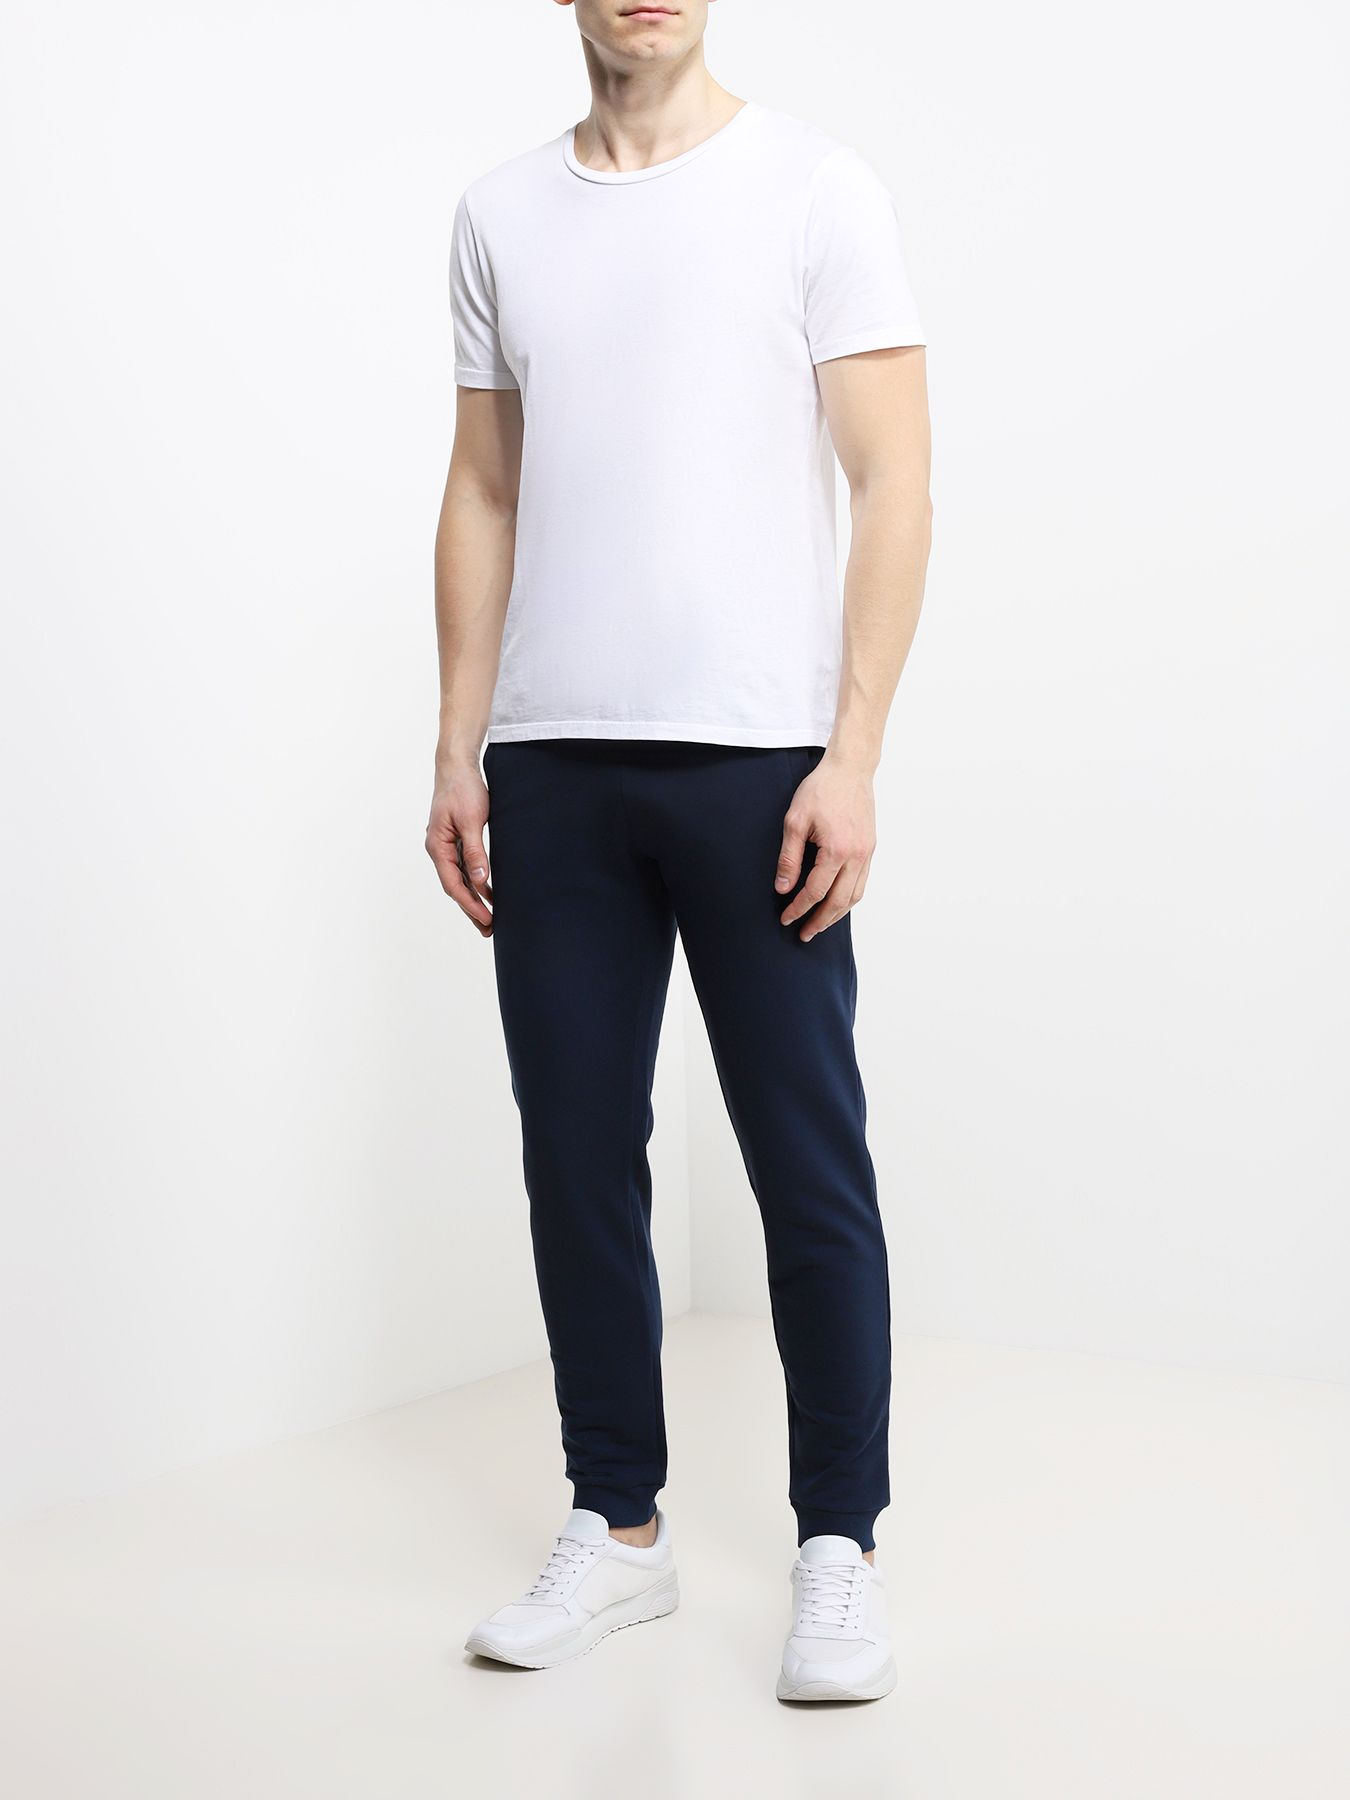 Брюки Trussardi Jeans Спортивные брюки брюки спортивные columbia columbia anytime outdoor boot cut pant